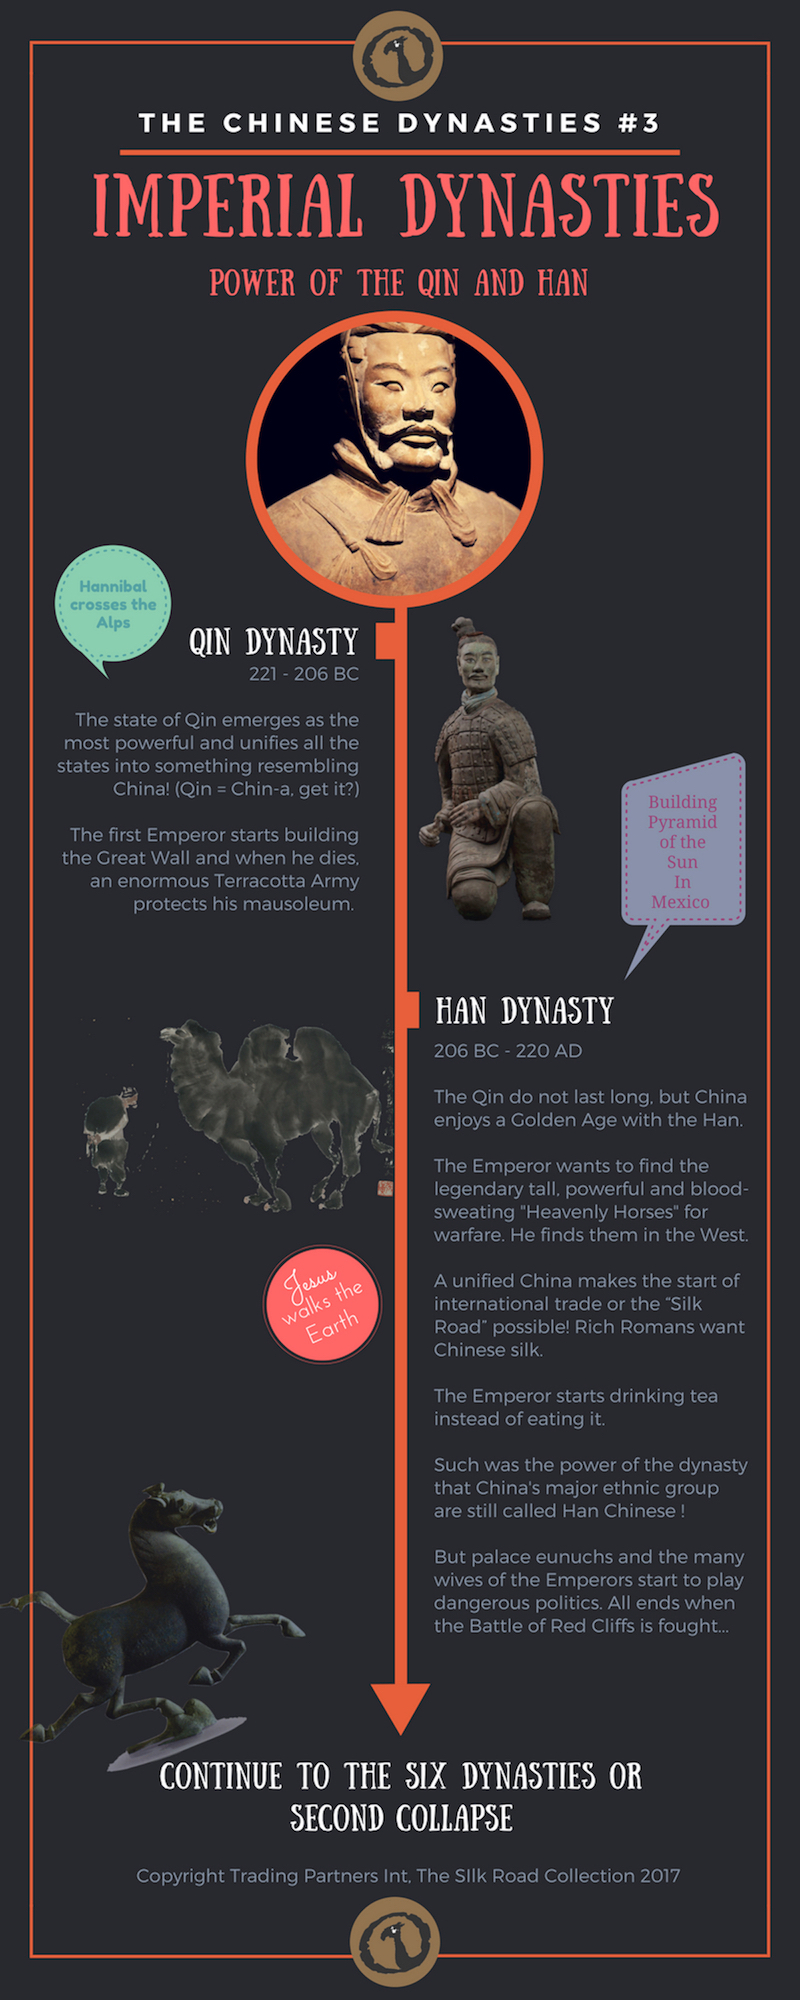 Timeline image of The Chinese Dynasties: Imperial Dynasties - Power of the Qin and Han